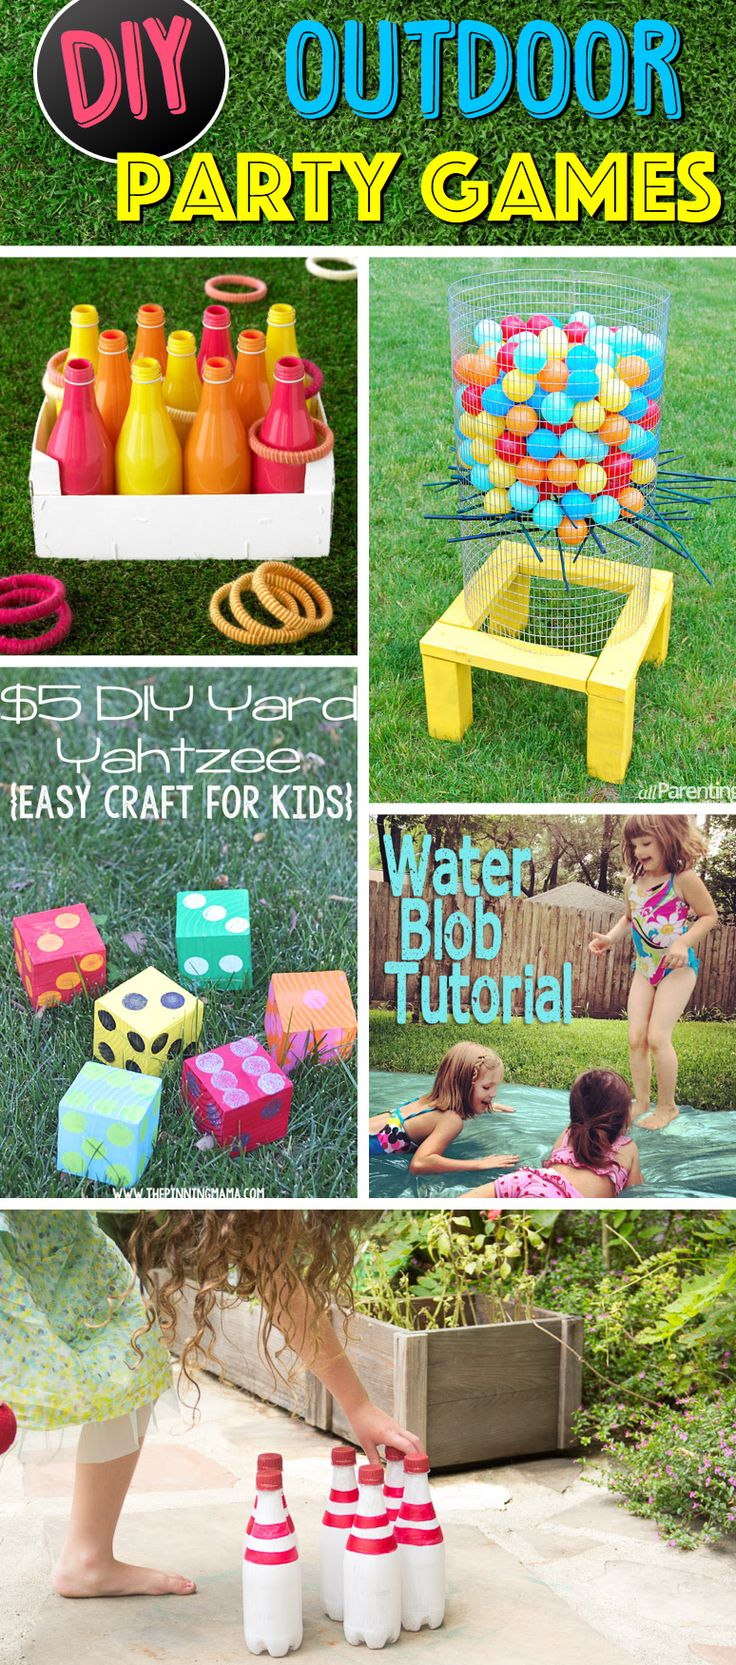 Best 20+ Family party games ideas on Pinterest | Fun party games ...